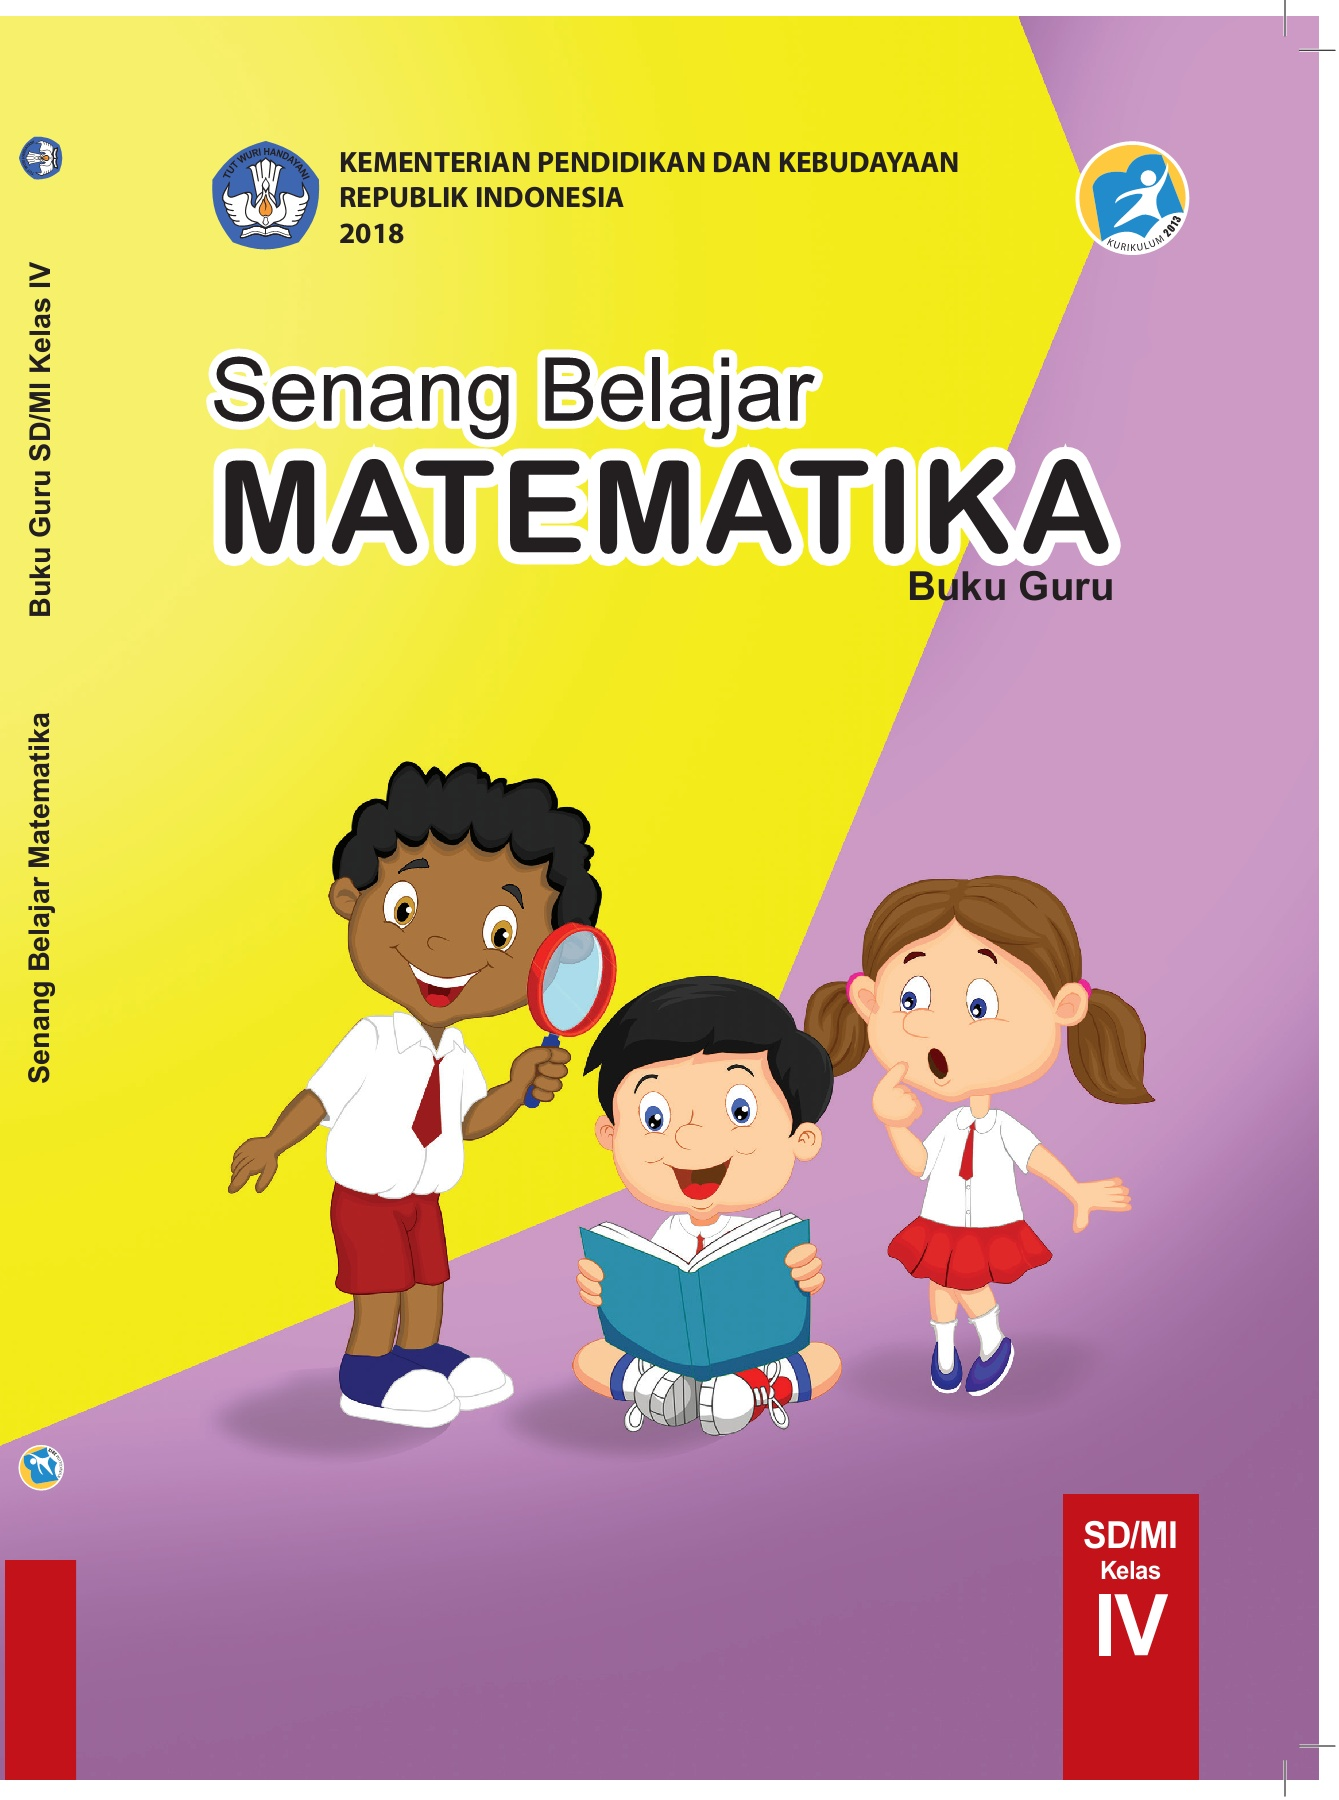 Bg Matematika Kelas 4 Datadikdasmen Com Pages 51 100 Text Version Anyflip